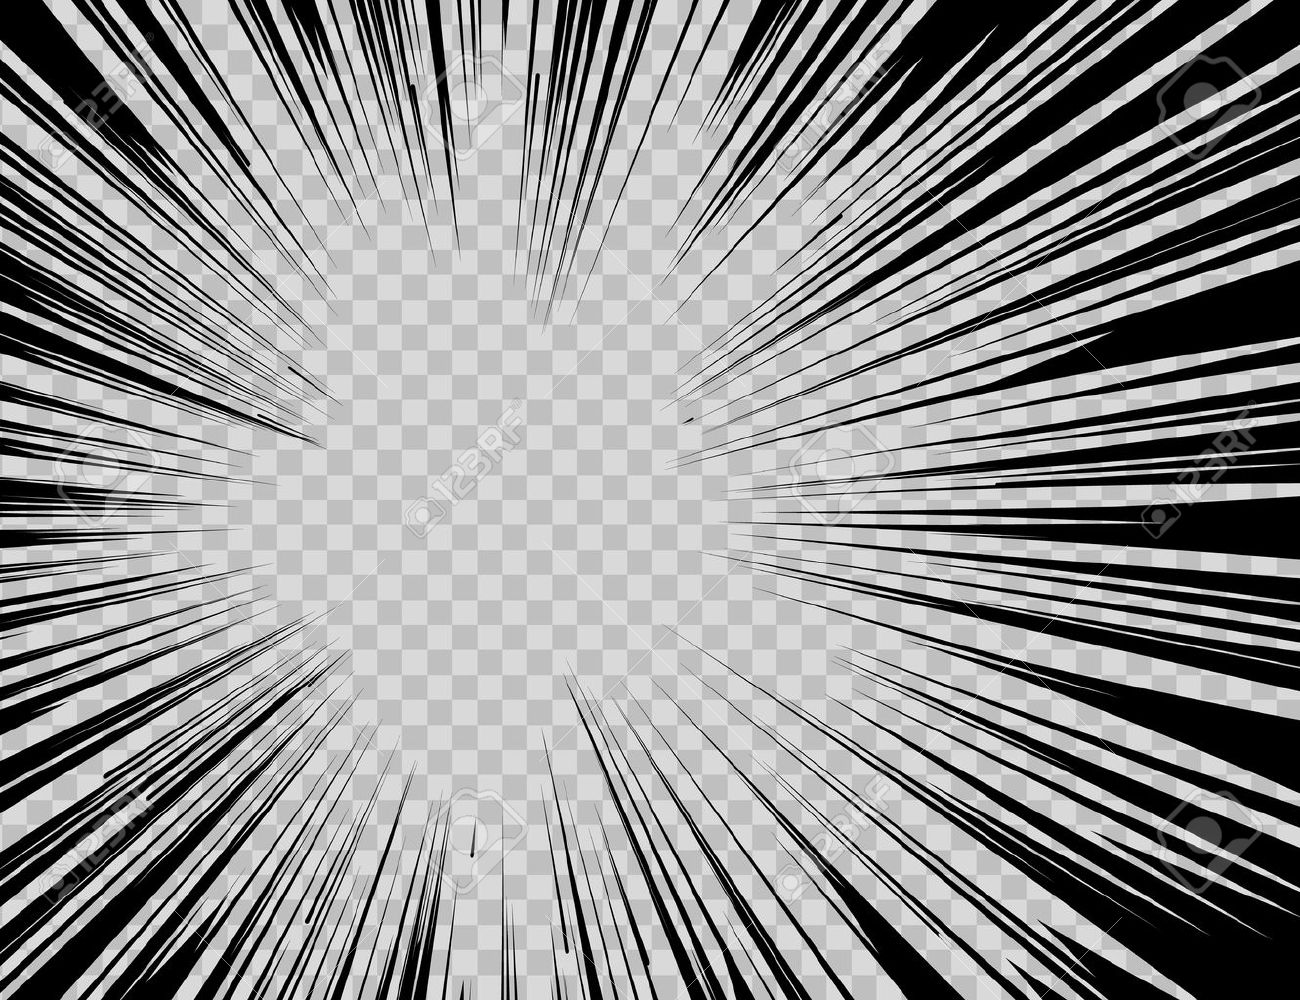 Abstract comic book flash explosion radial lines on transparent background. - 53985491